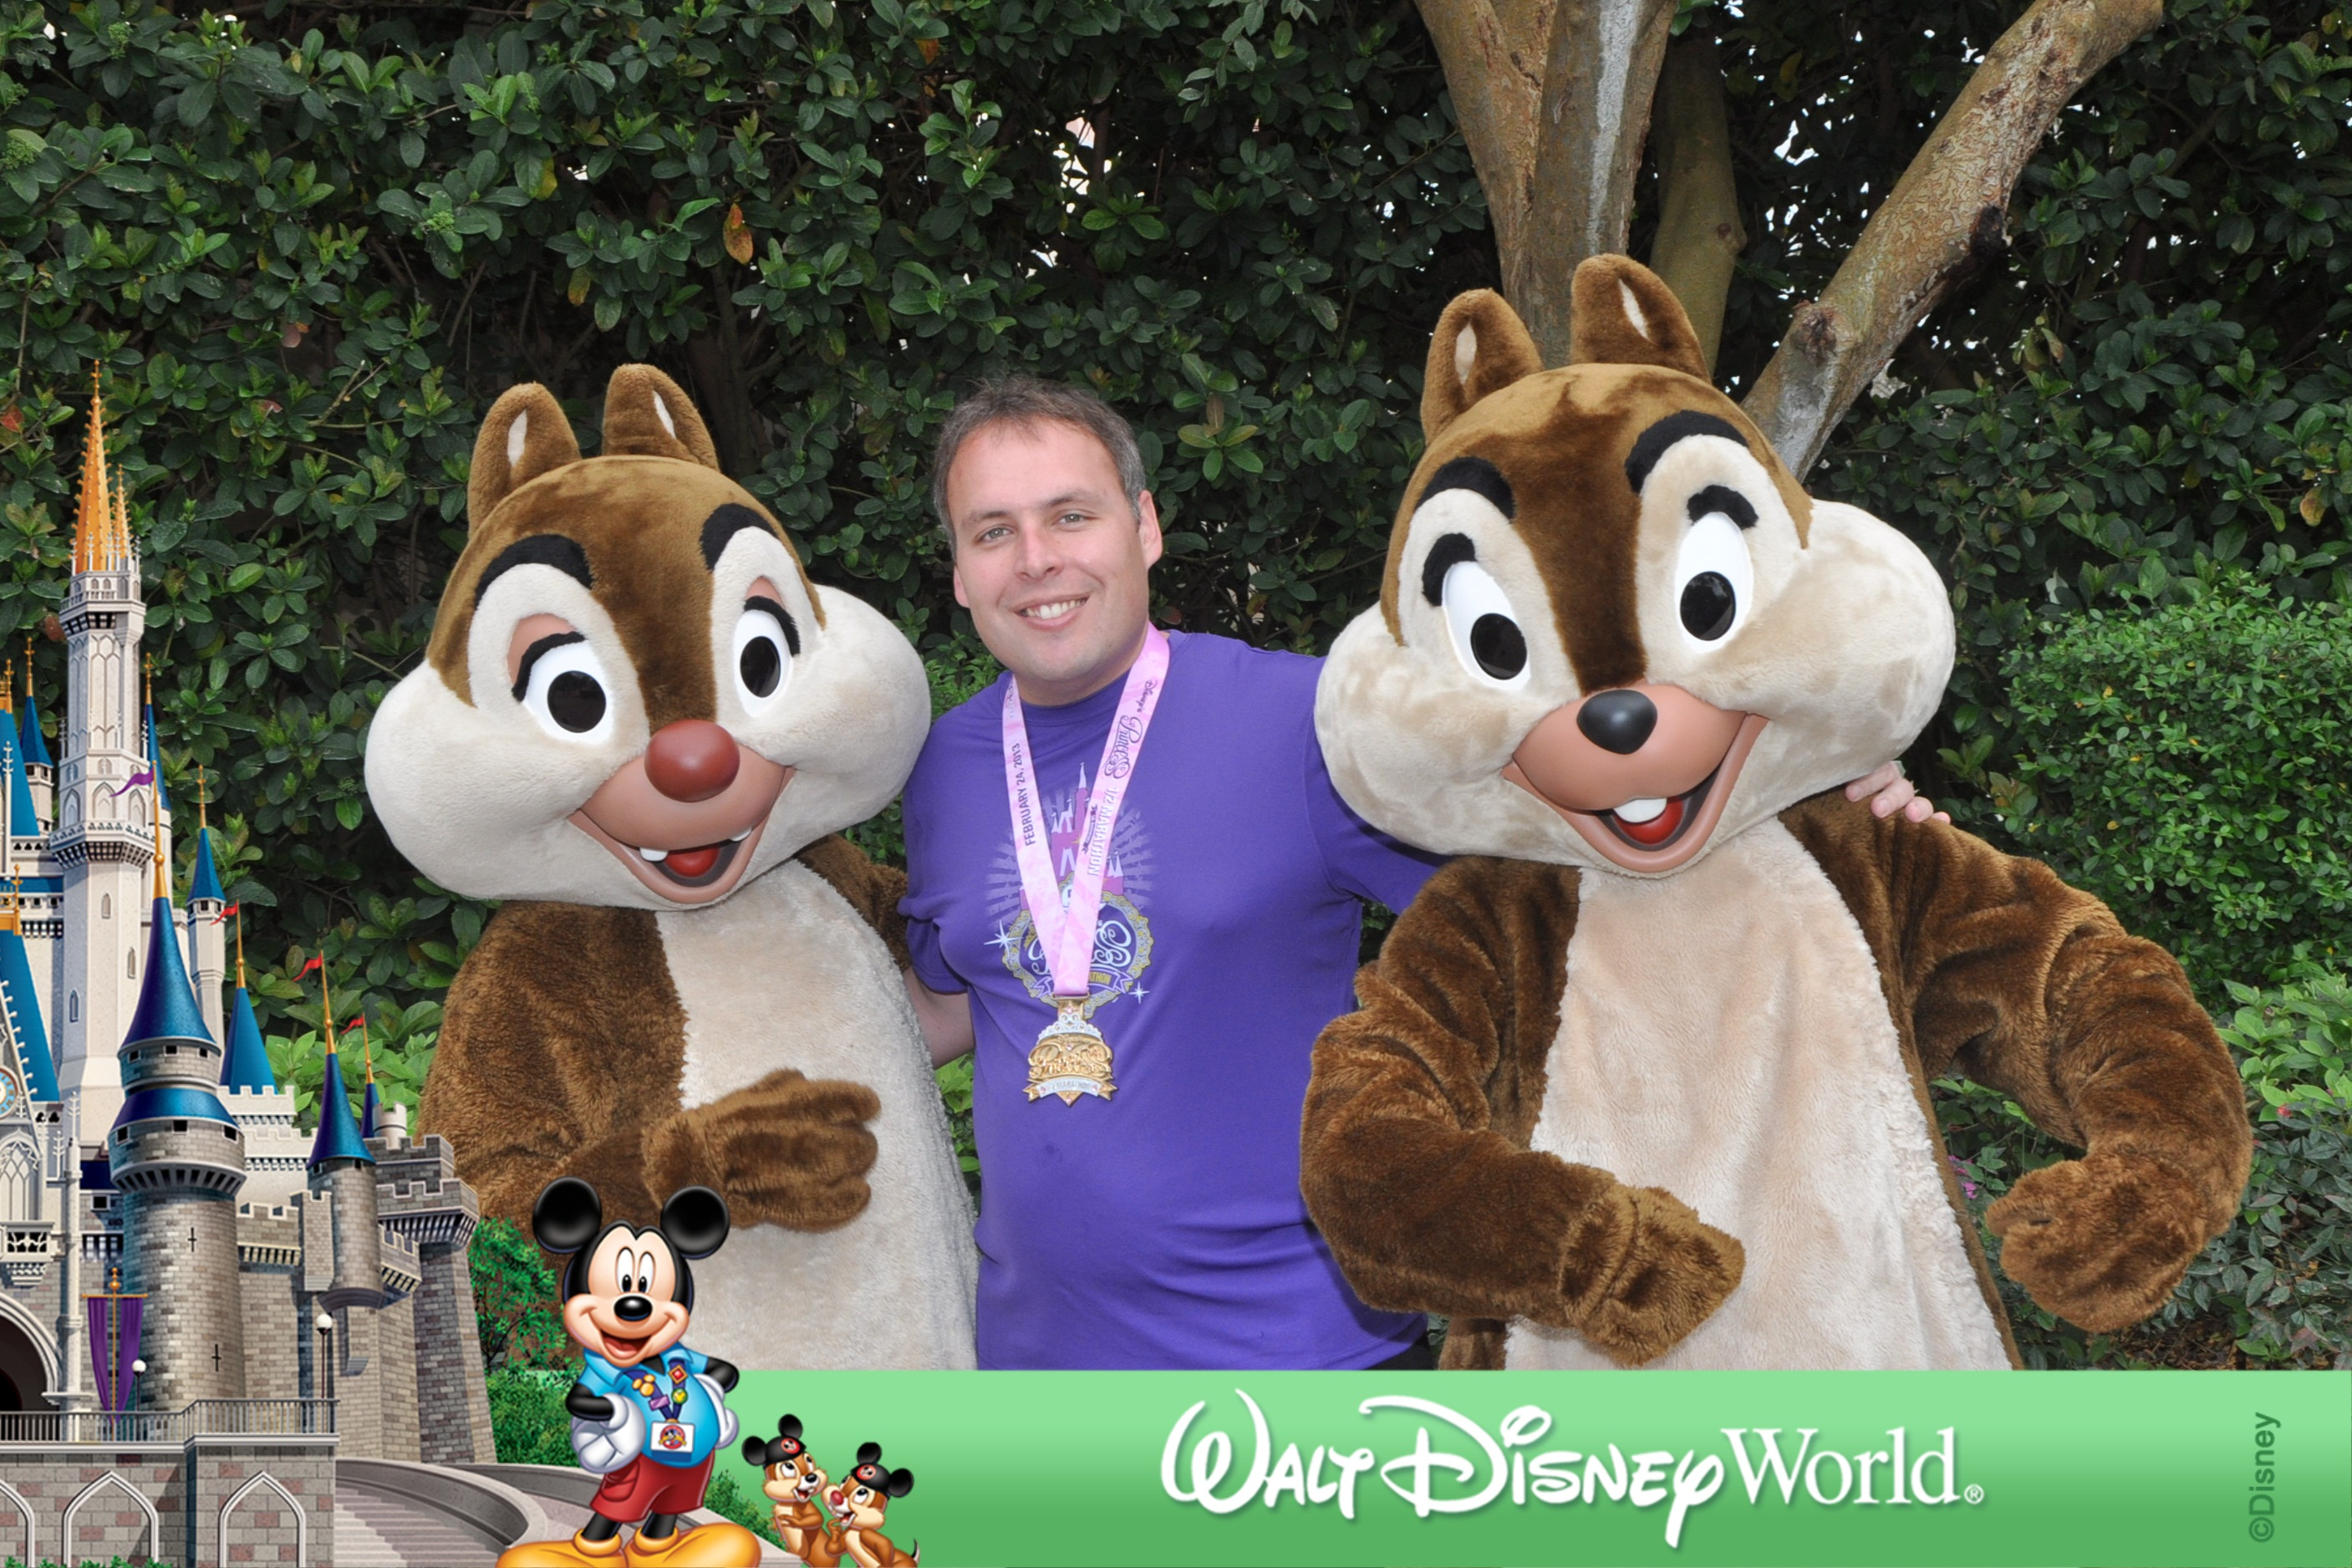 Top 10: Why I Run To RunDisney